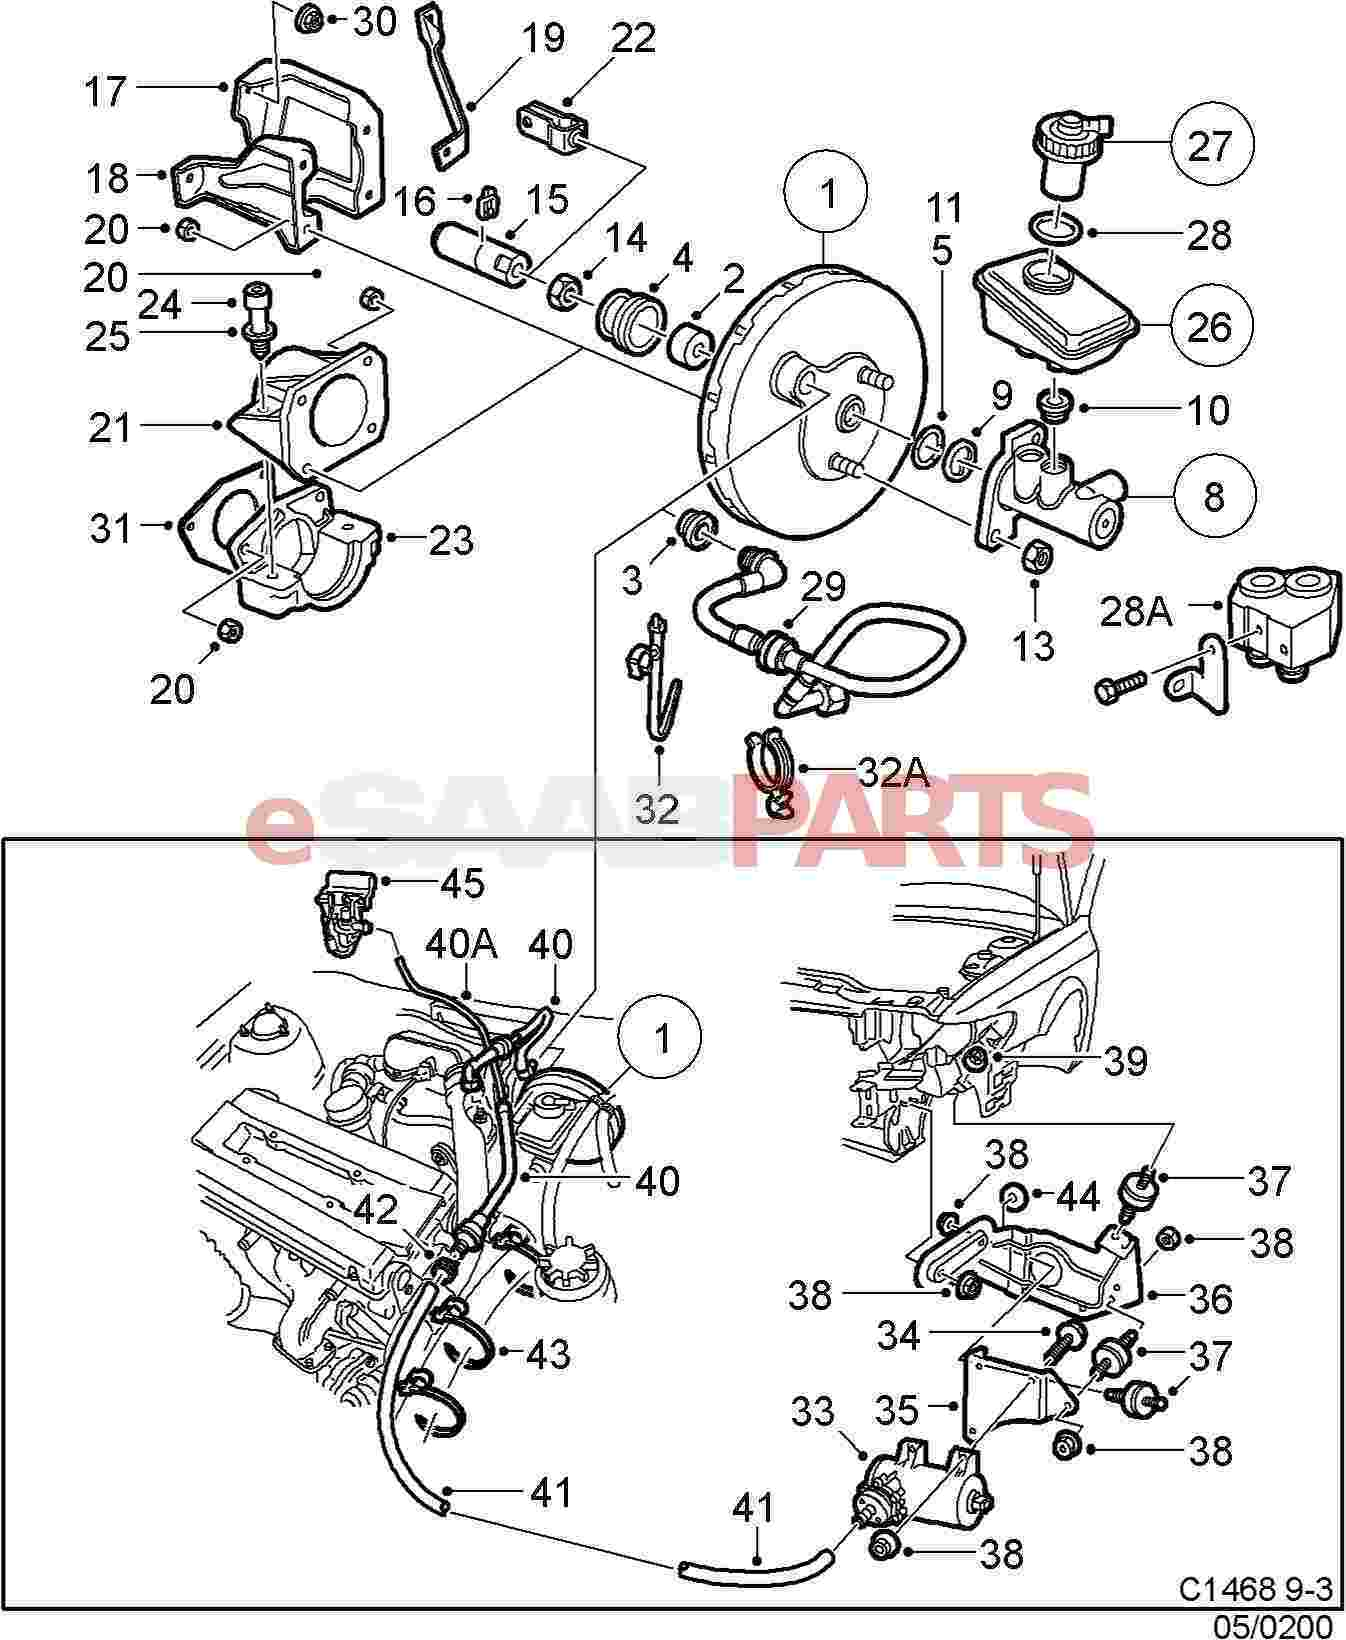 4543872] saab brake servo genuine saab parts from esaabparts com